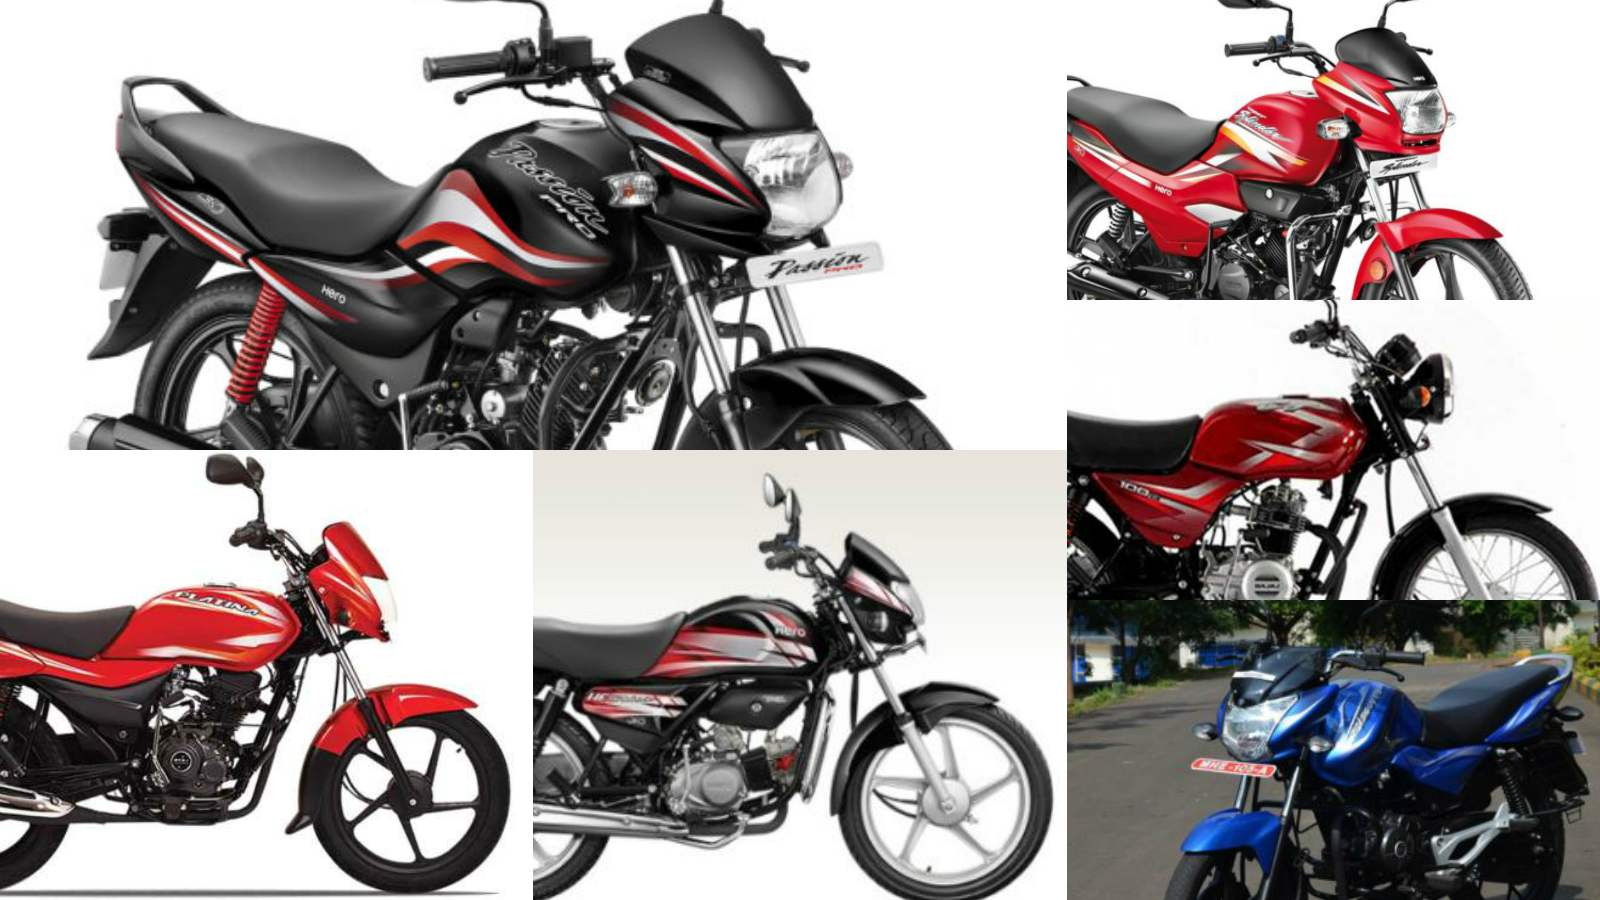 100cc Bikes In India With Prices And Specifications - Motoroids